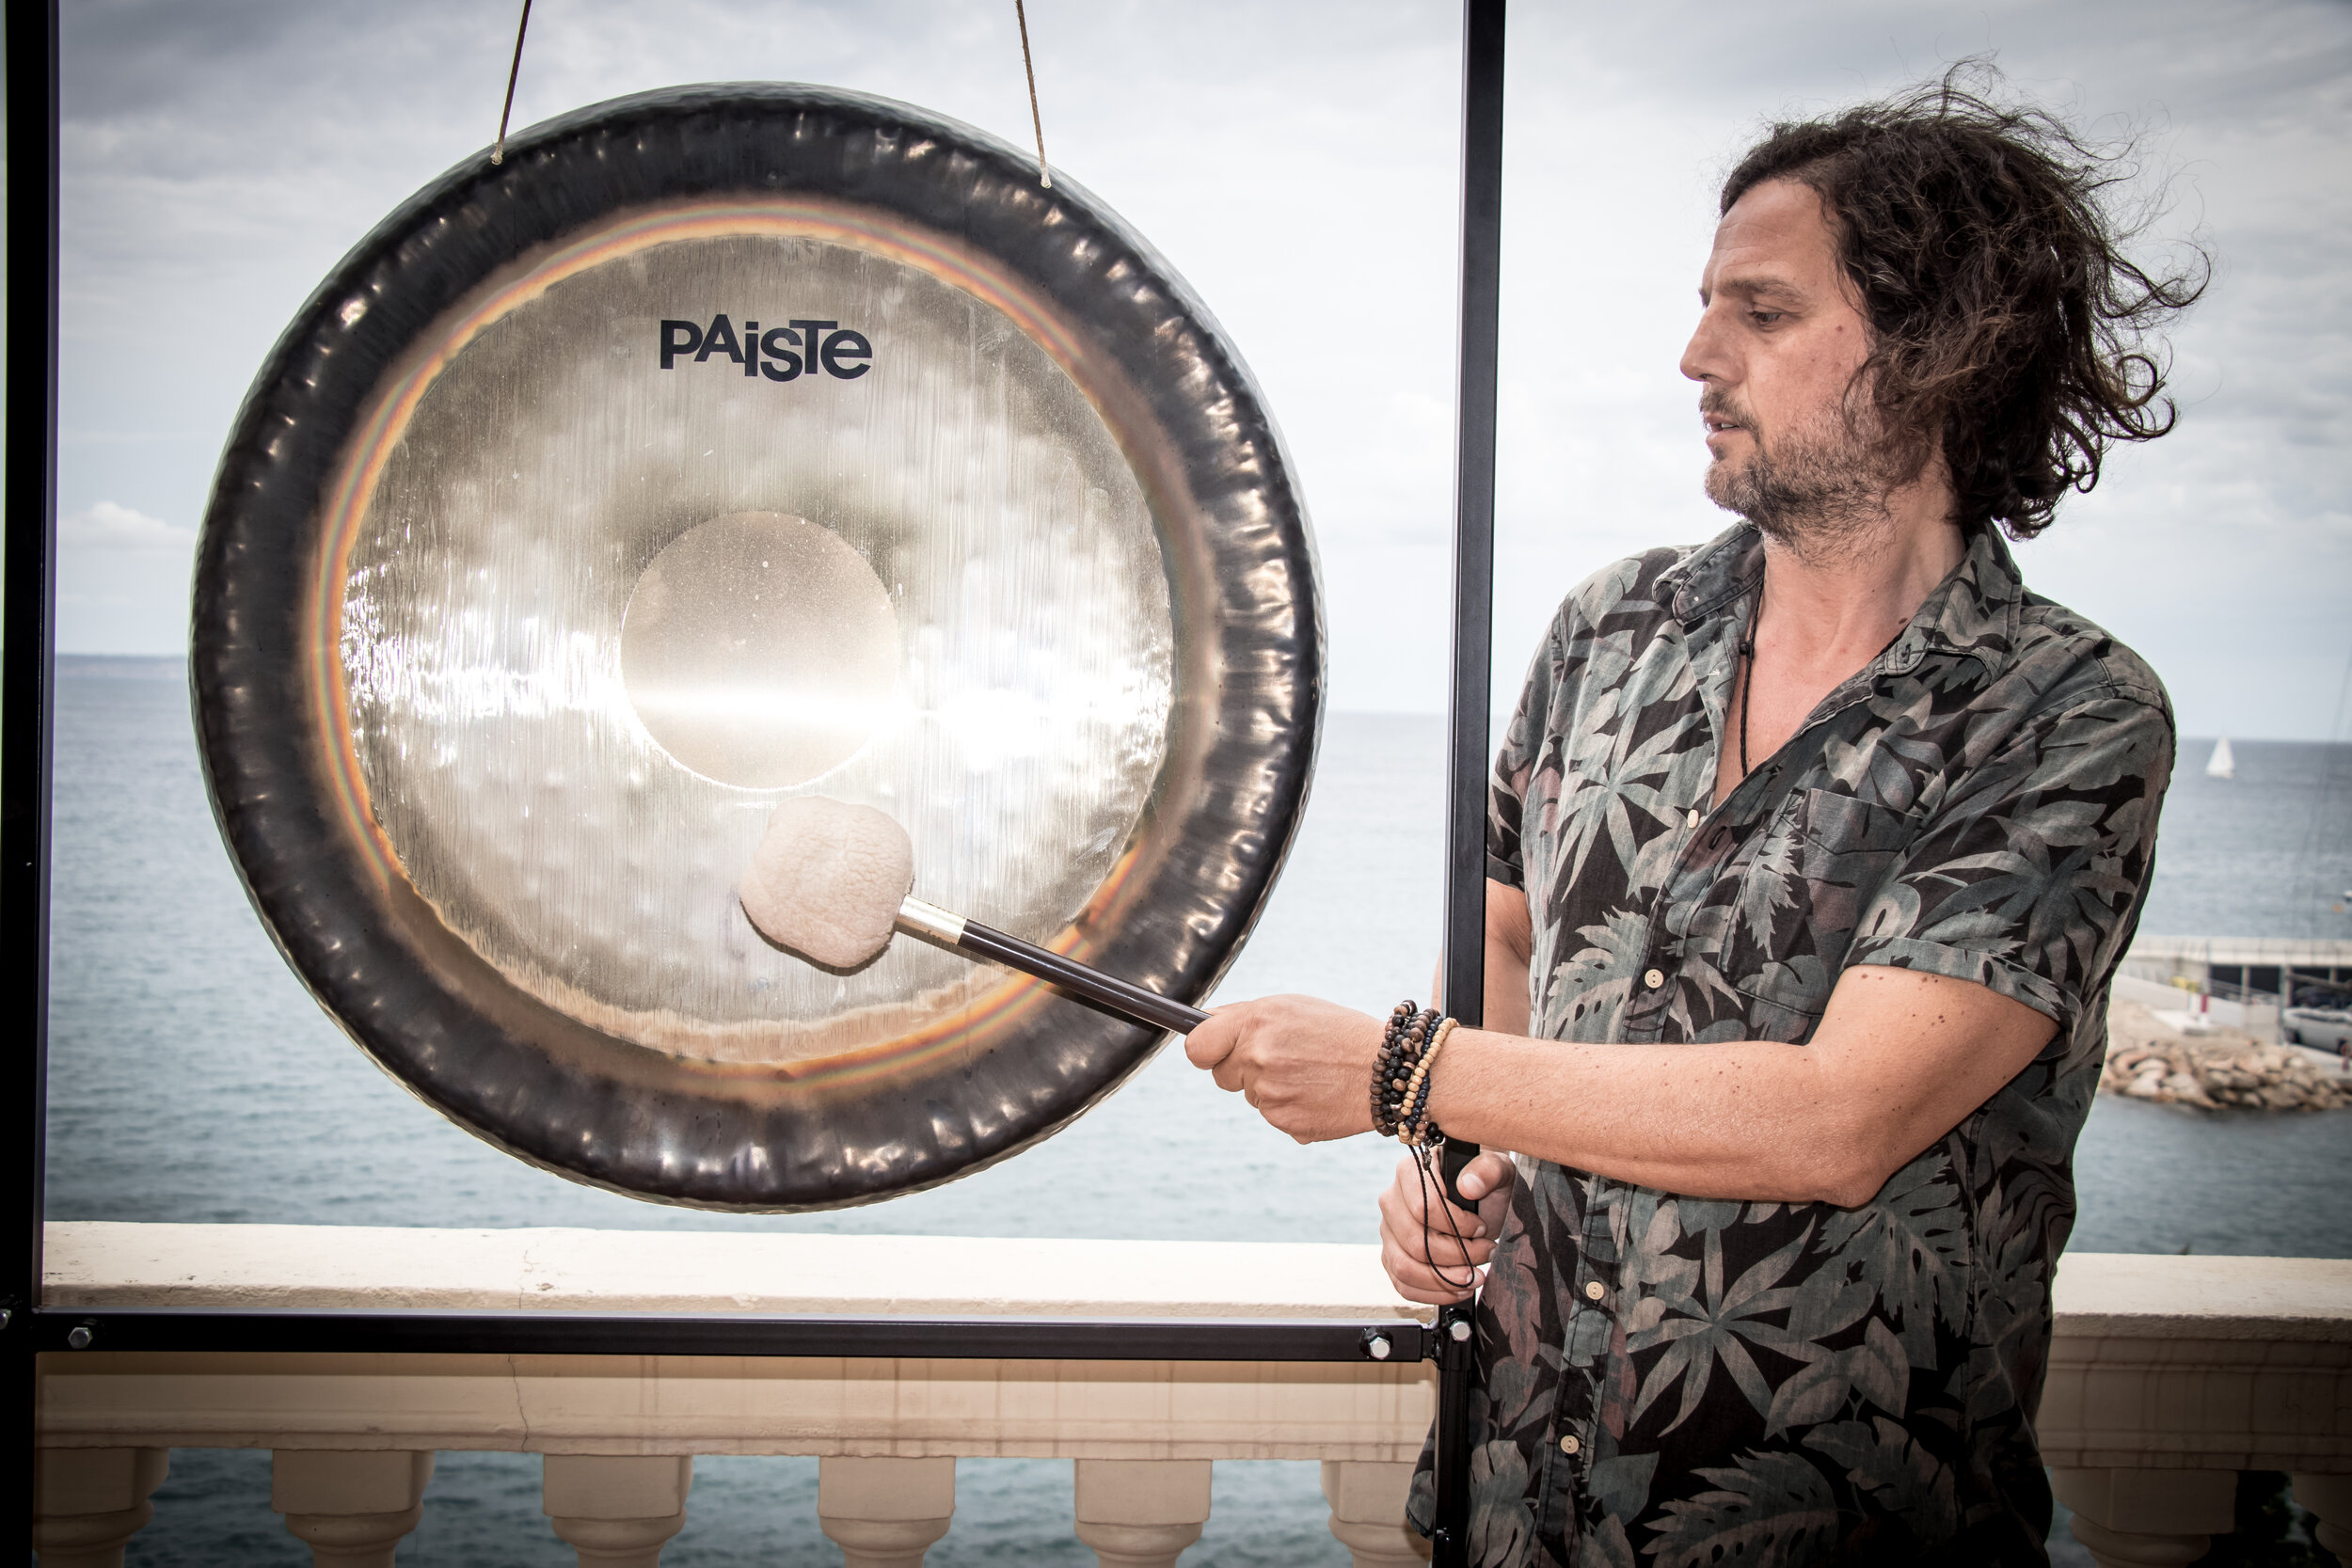 """Gongoro - Gongoro is an Italian professional gong player. He lives between Mallorca and Tulum. He comes from Adinadd Art Gong School, based with Yogi Bhajan's Teaching. With more of 300 hours he graduated as a sound therapist of gong in Tulum (Mexico) with the gong master Har Harí.Gong is really powerful because Gong vibration (through neutral mind) comes from the universe and transmits regenerative energy to all the cells of the body.By means of this universal vibration, we can remove old traumas and fears starting your own healing. Moreover we can get in touch with our higher self, awakening intuition and telepathy. You are invited to join the gong bath every day at 5pm""""Gong is always like sun"""" Yogi Bhajan"""